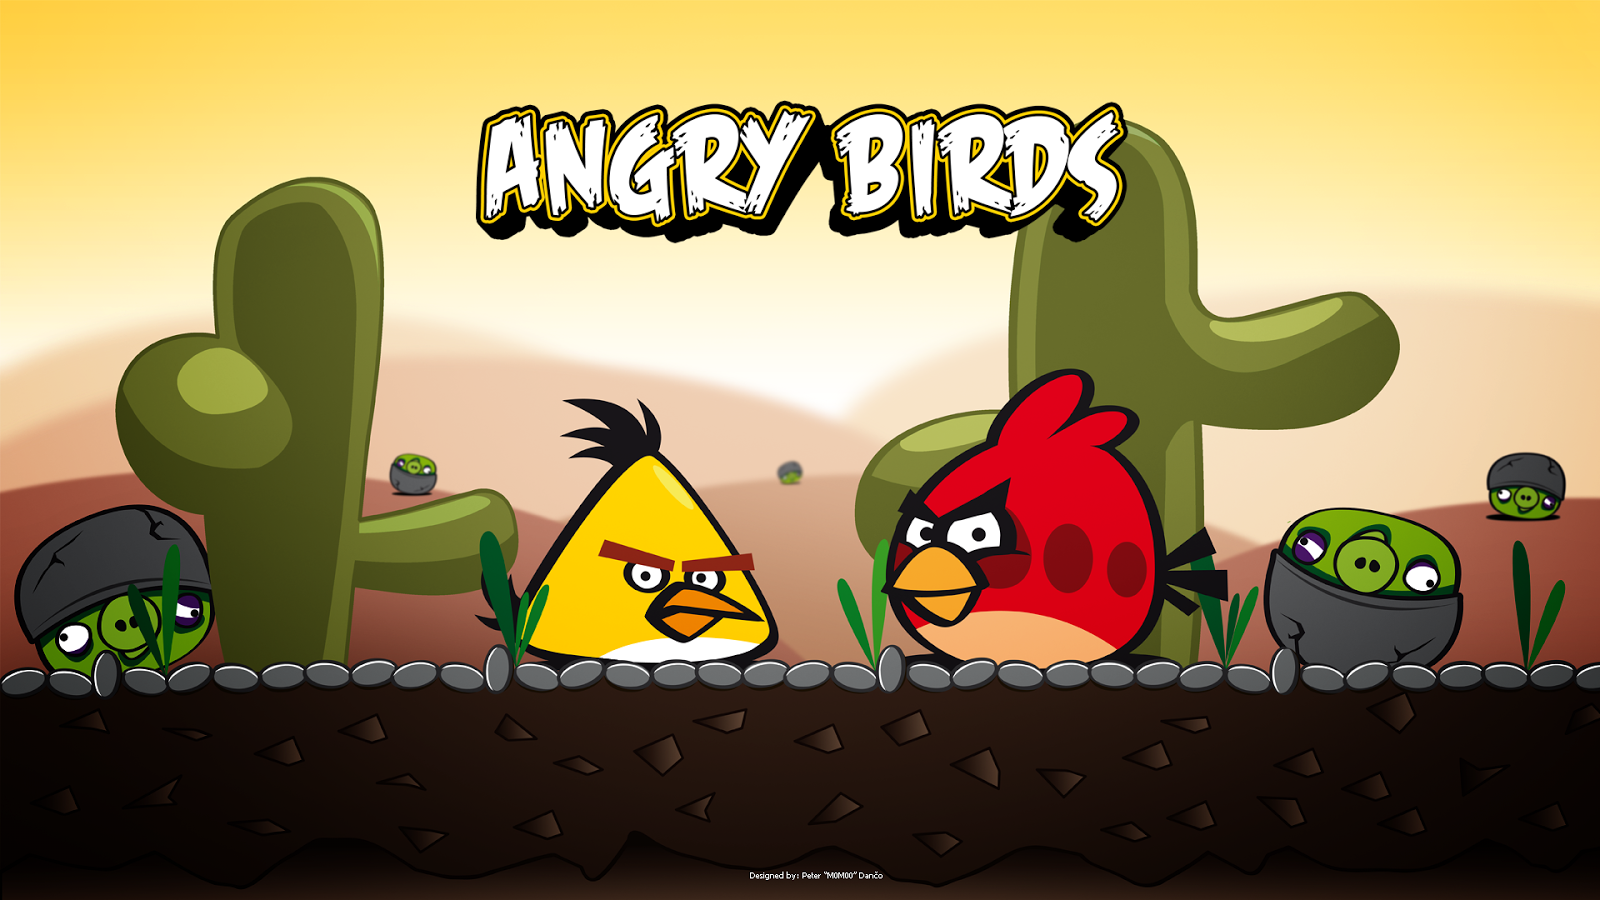 Angry Birds HD Wallpaper 2013 1600x900